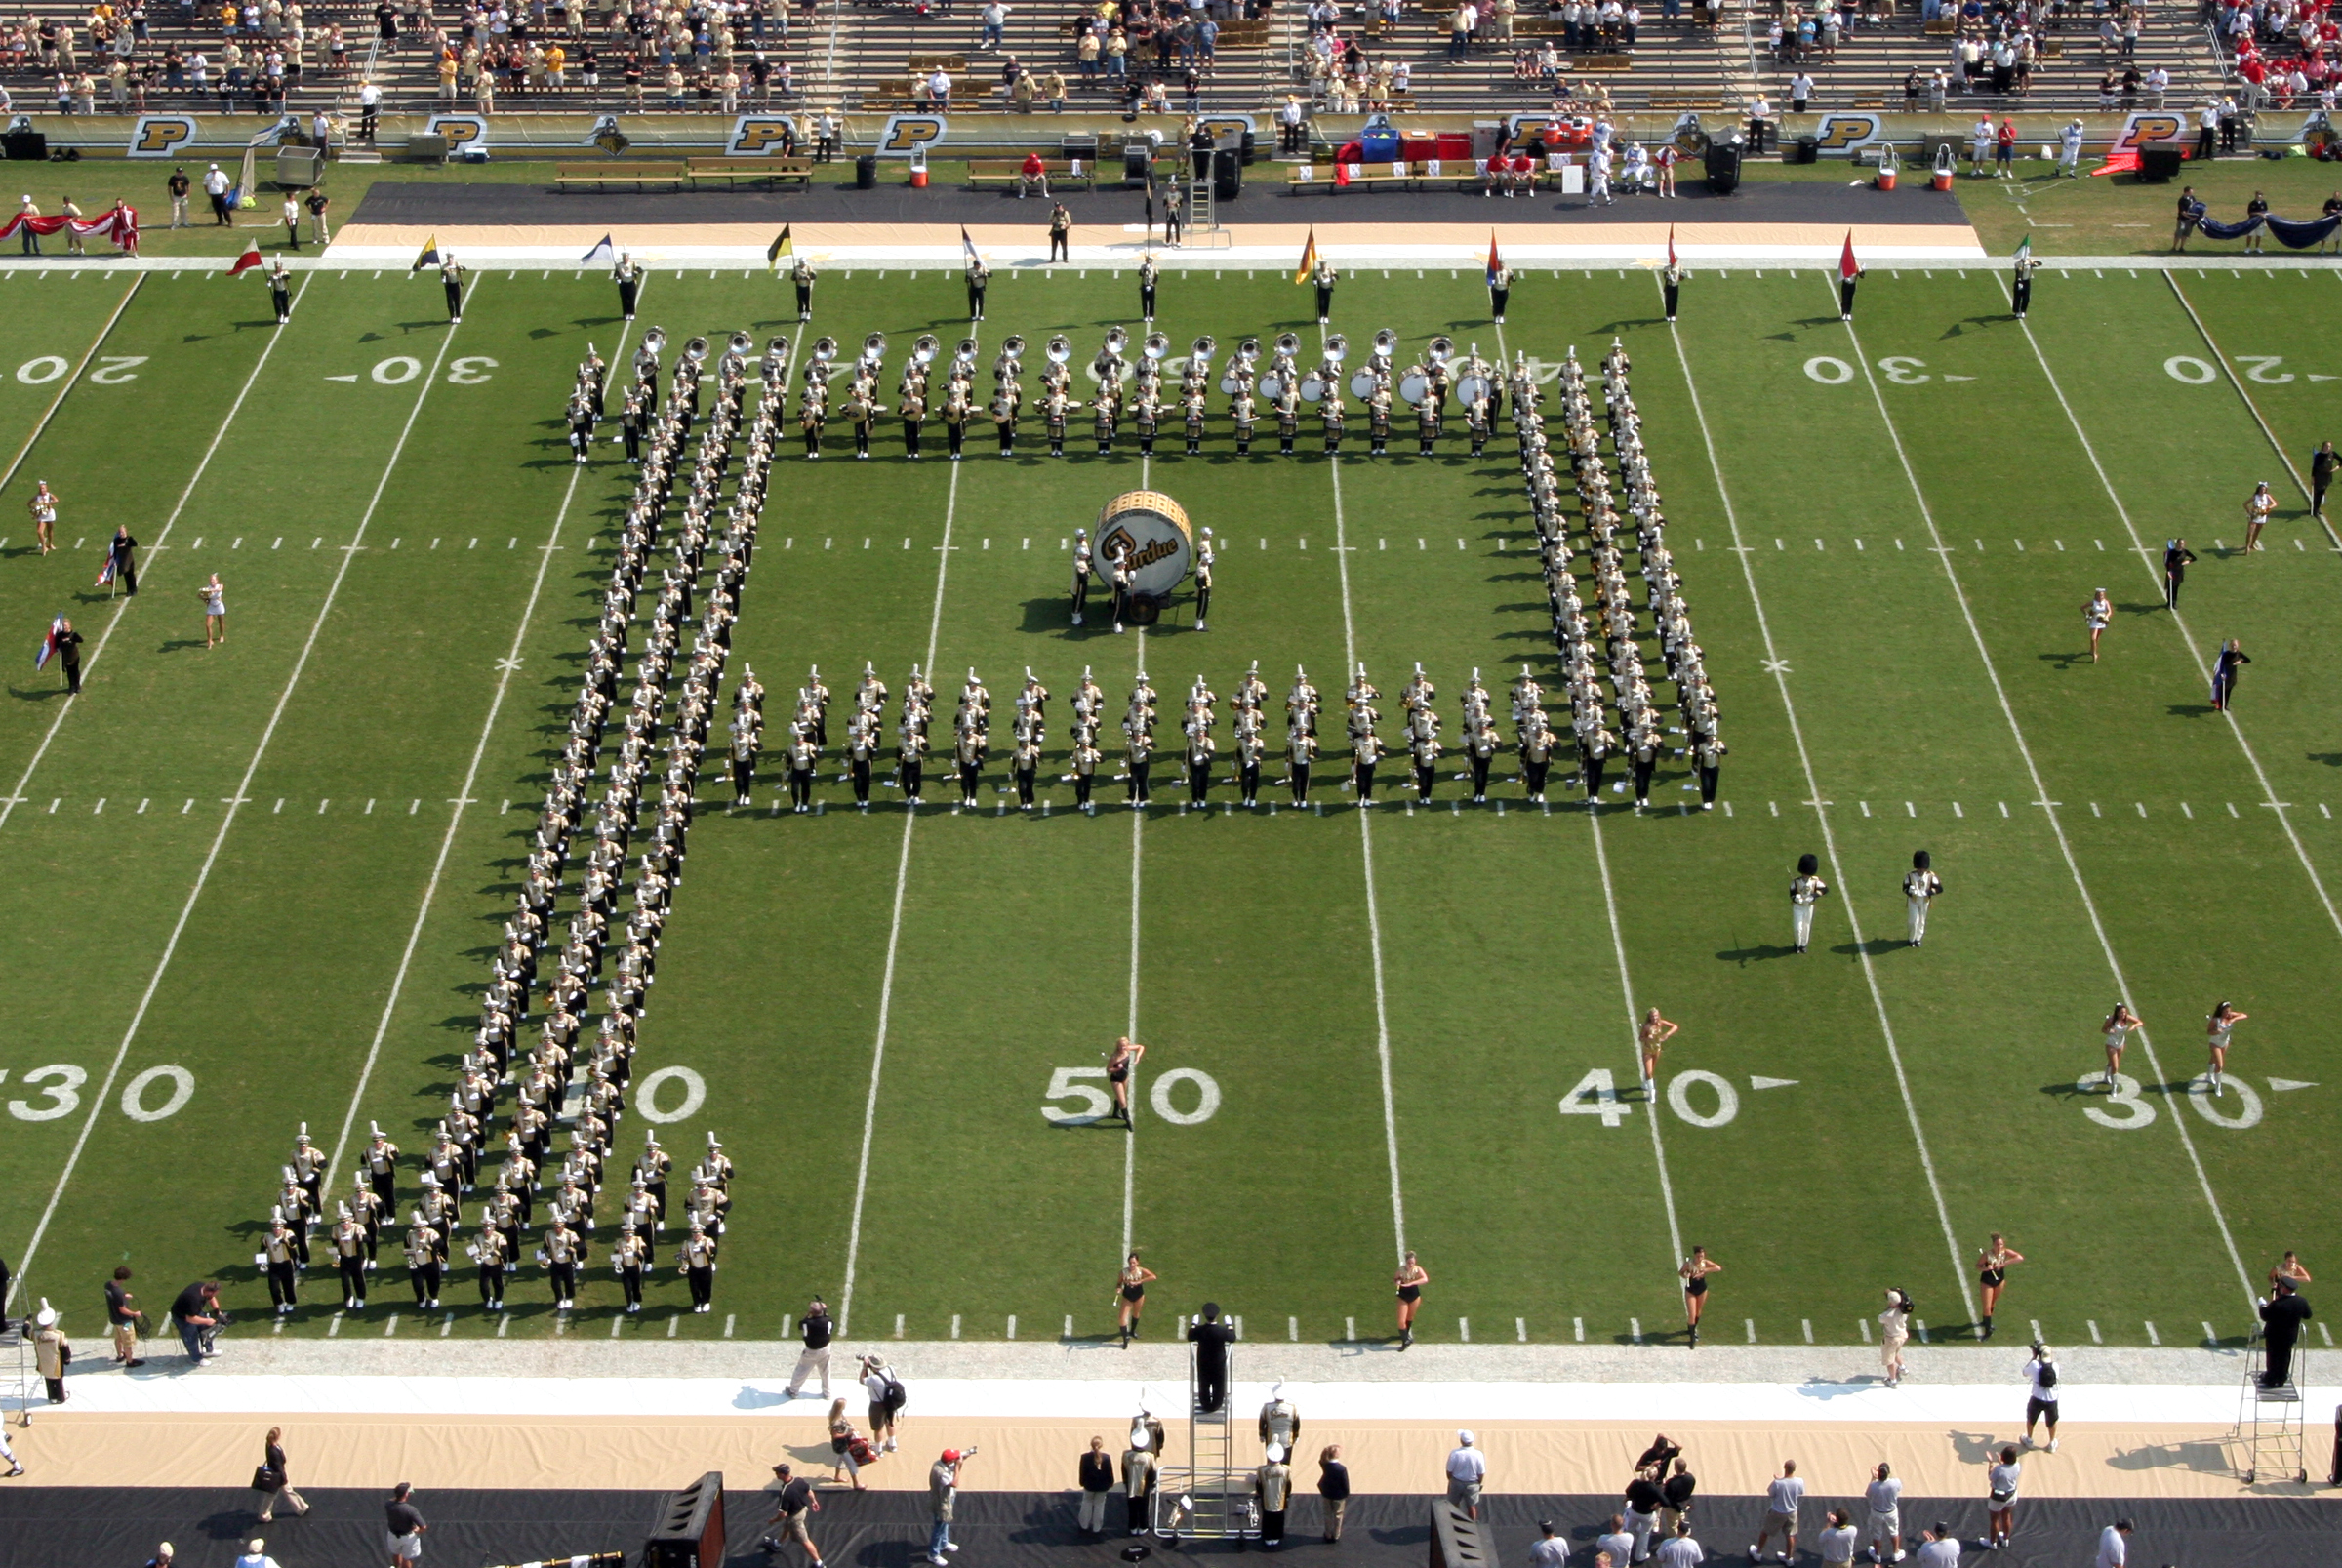 Purdue 'All-American' Band's historic Block P turns 100